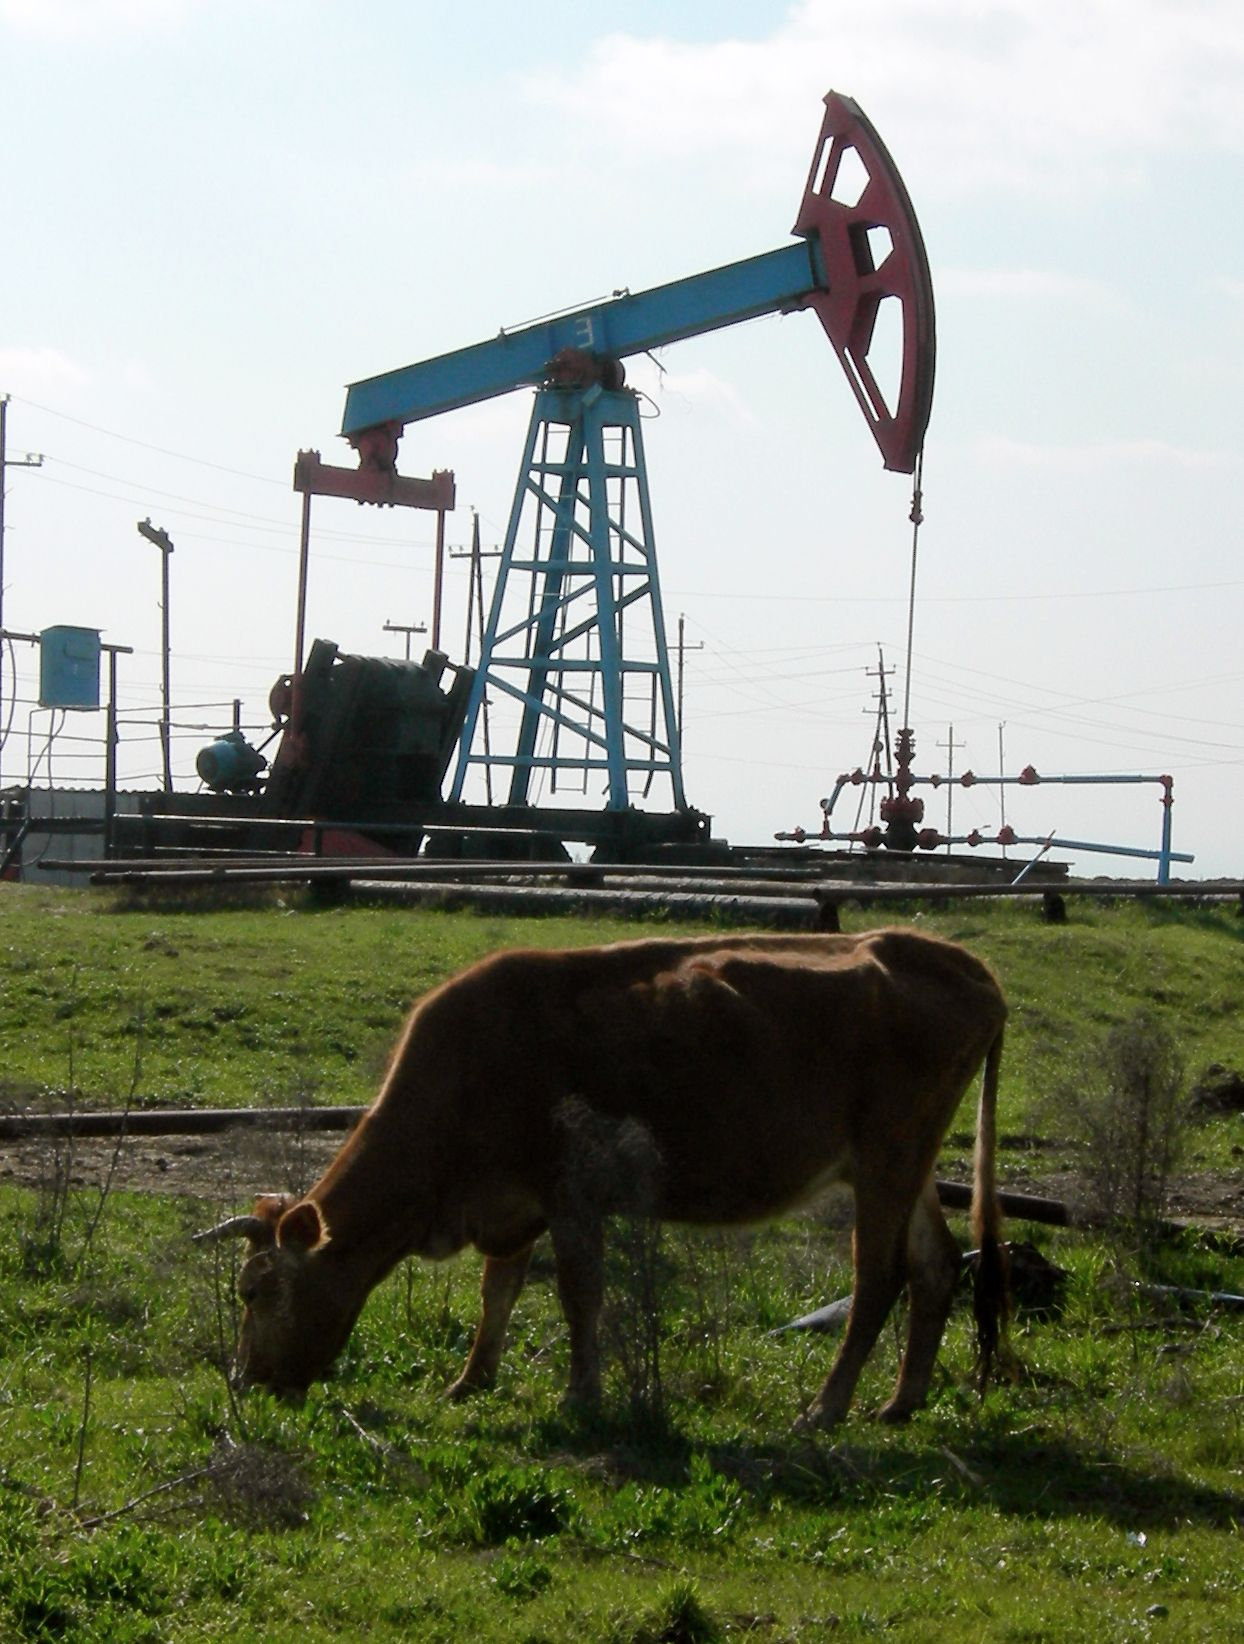 A cow and an oil well show two different economic systems